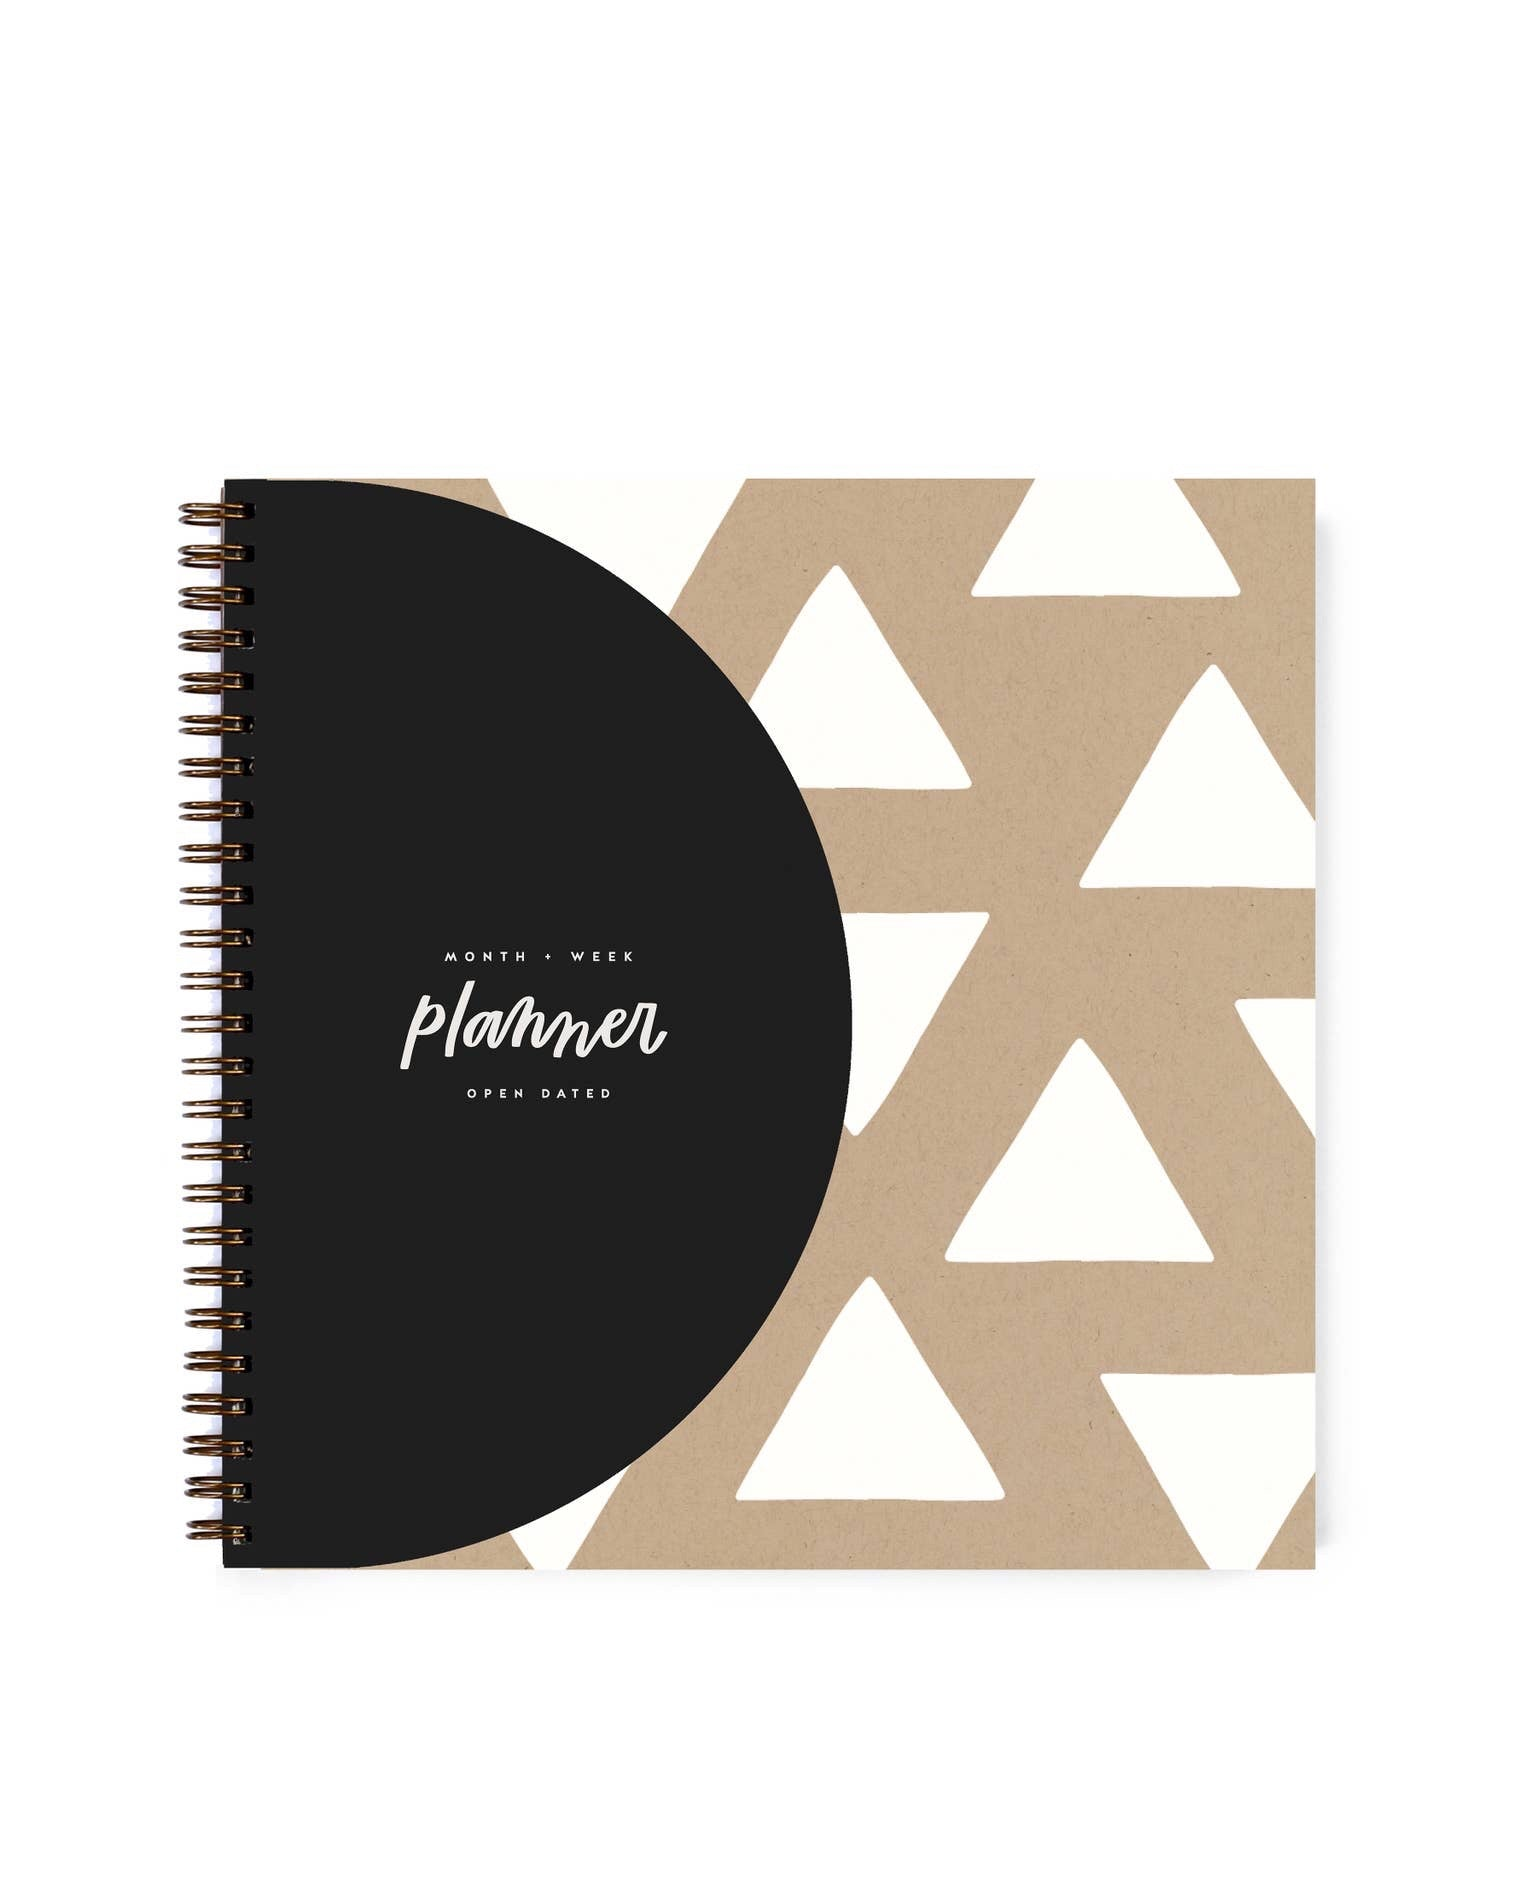 Modern Monthly + Weekly Planner